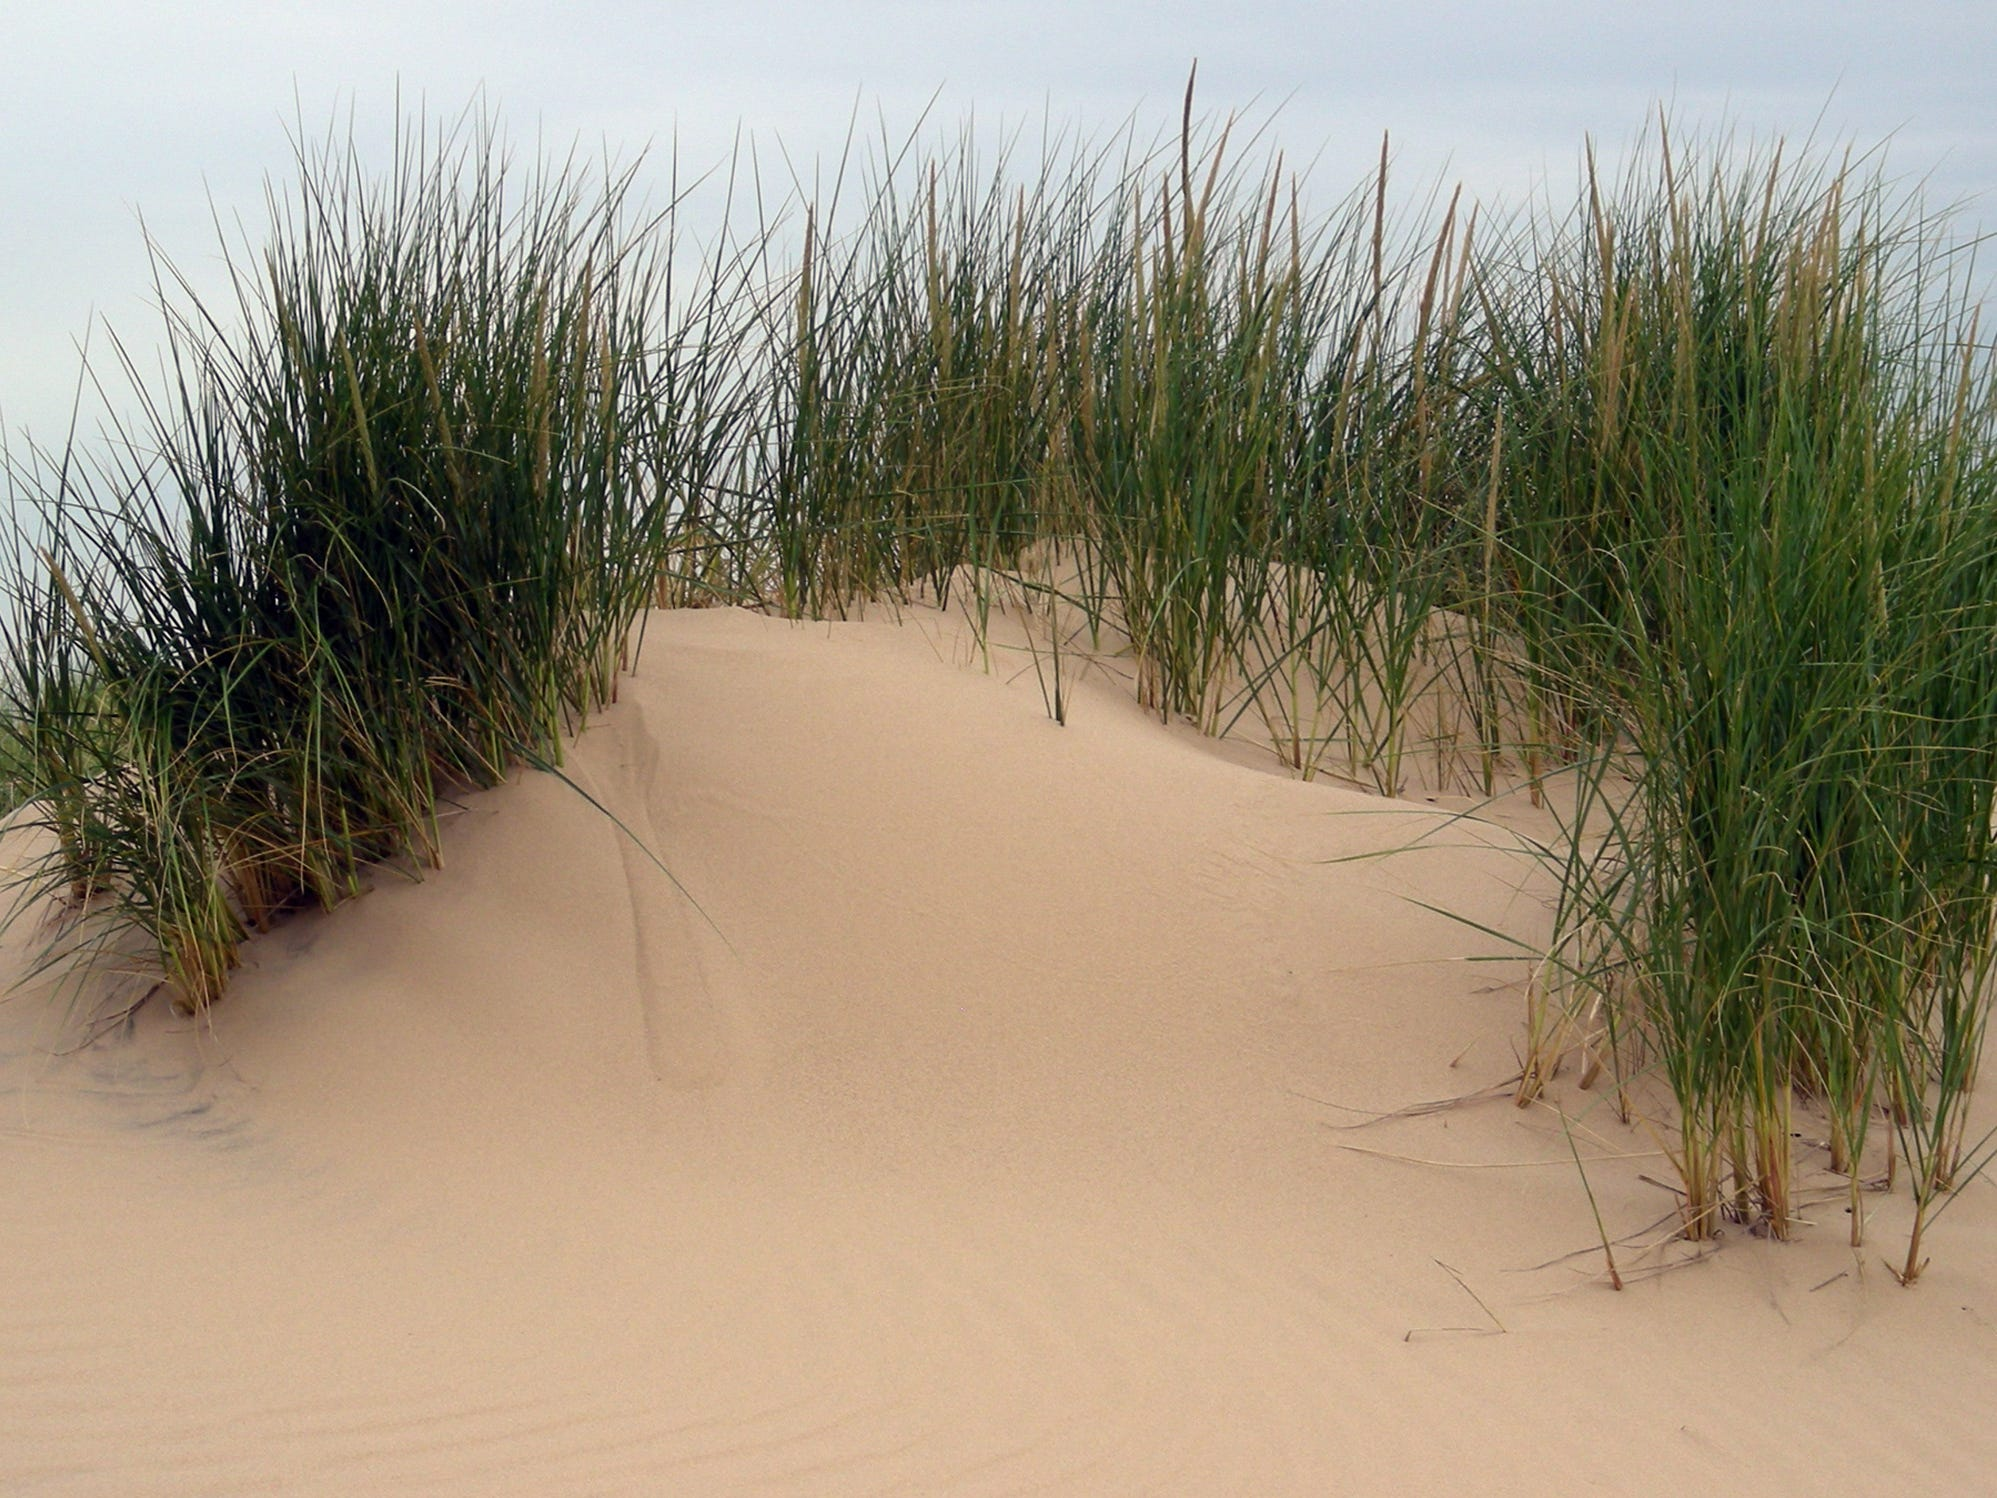 Marram grass is the key to keep sands from blowing away. It sends deep roots into the sand to hold it in place.